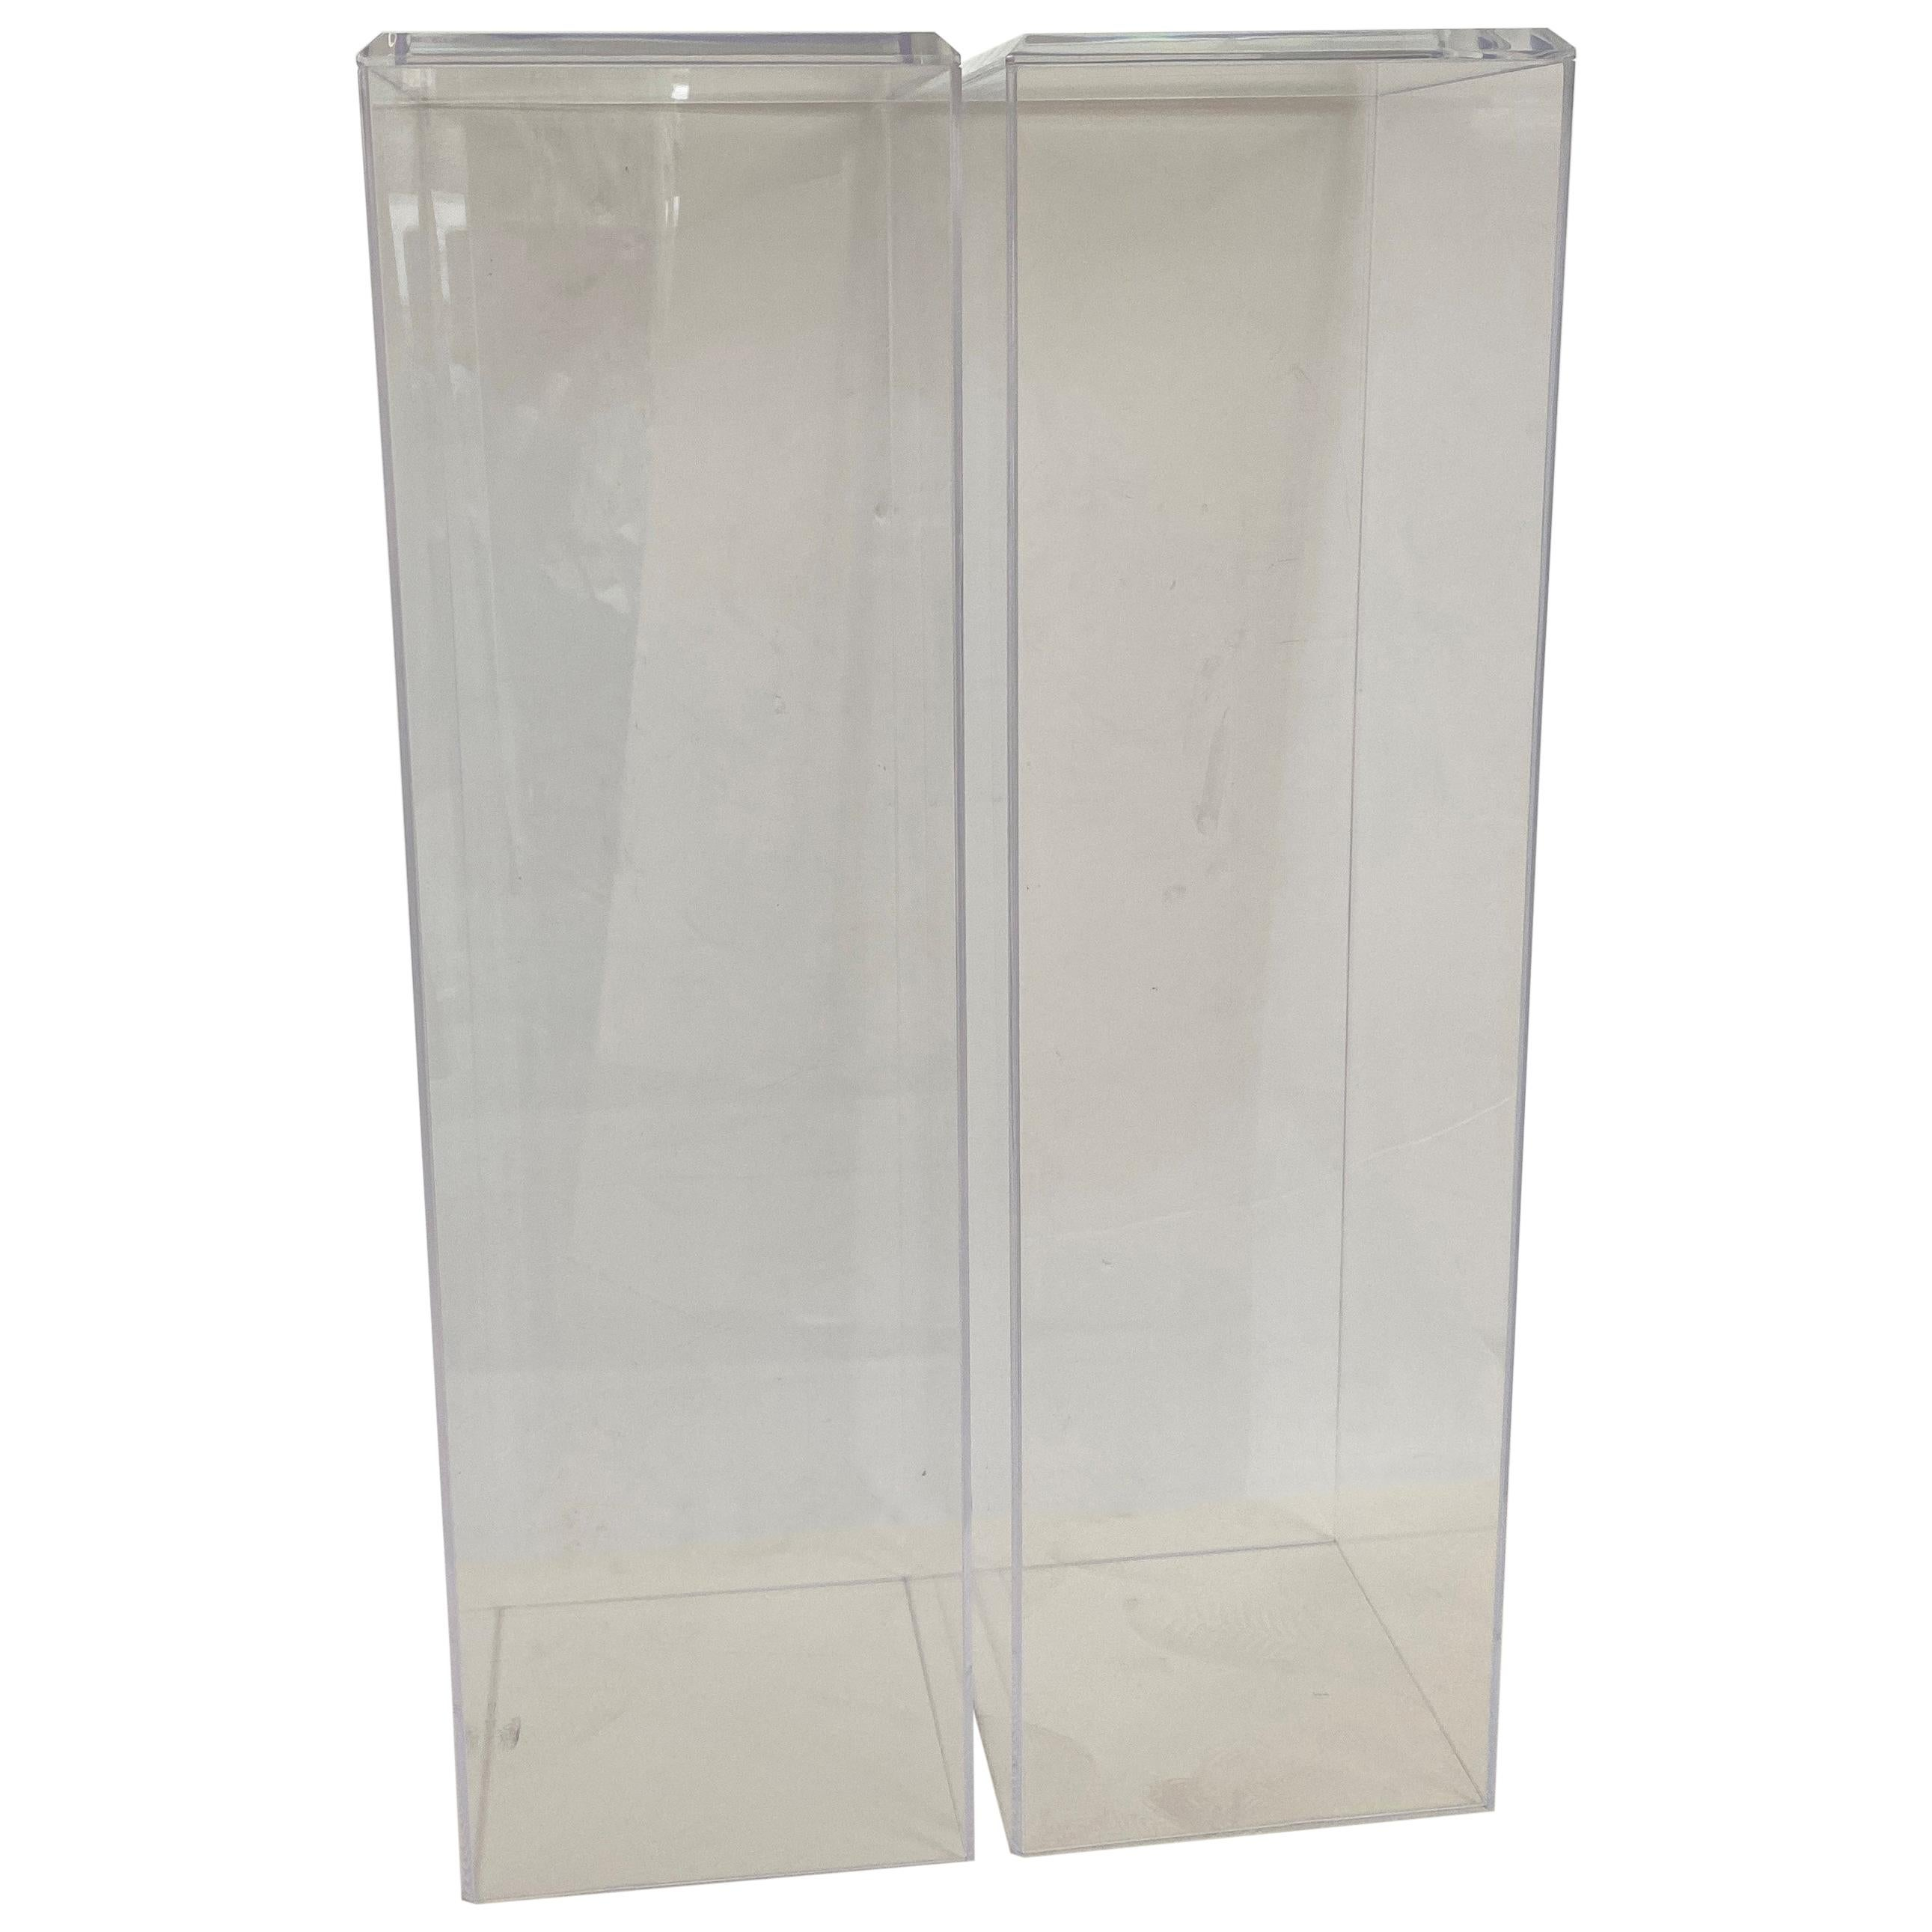 Pair of Bespoke Lucite Pedestals by Iconic Snob Galeries